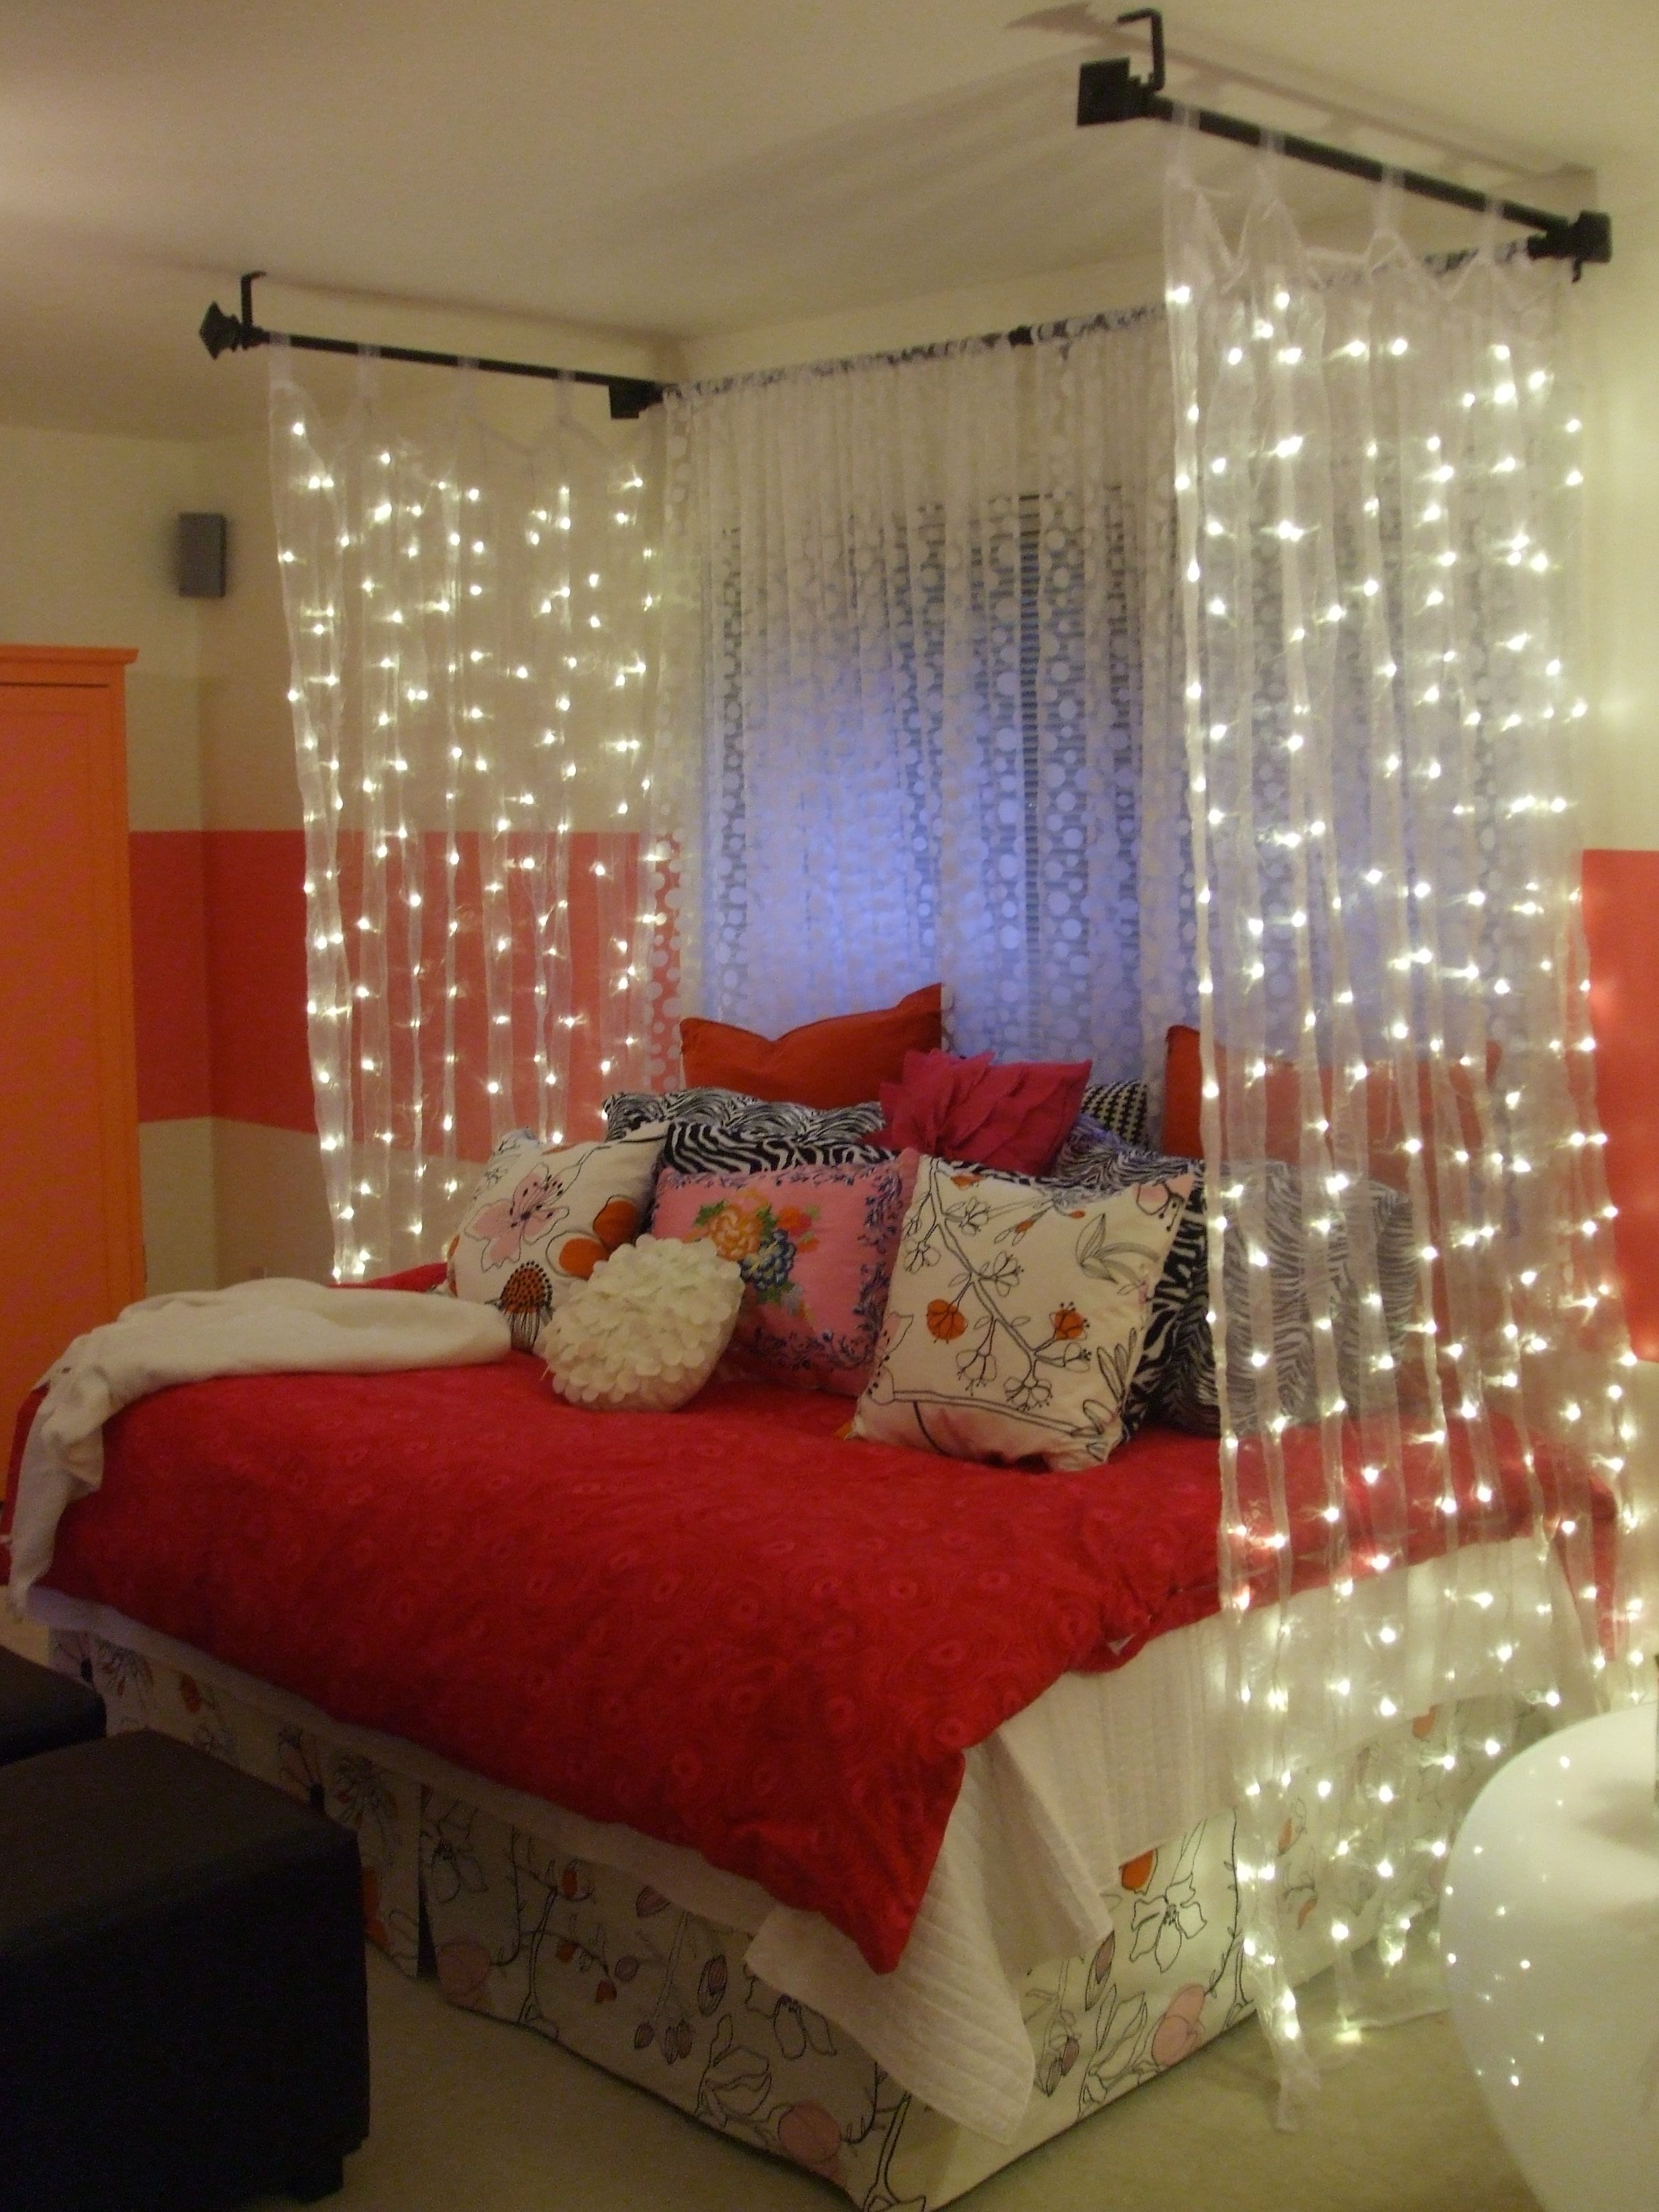 Diy bed canopy dorm - 20 Magical Diy Bed Canopy Ideas Will Make You Sleep Romantic